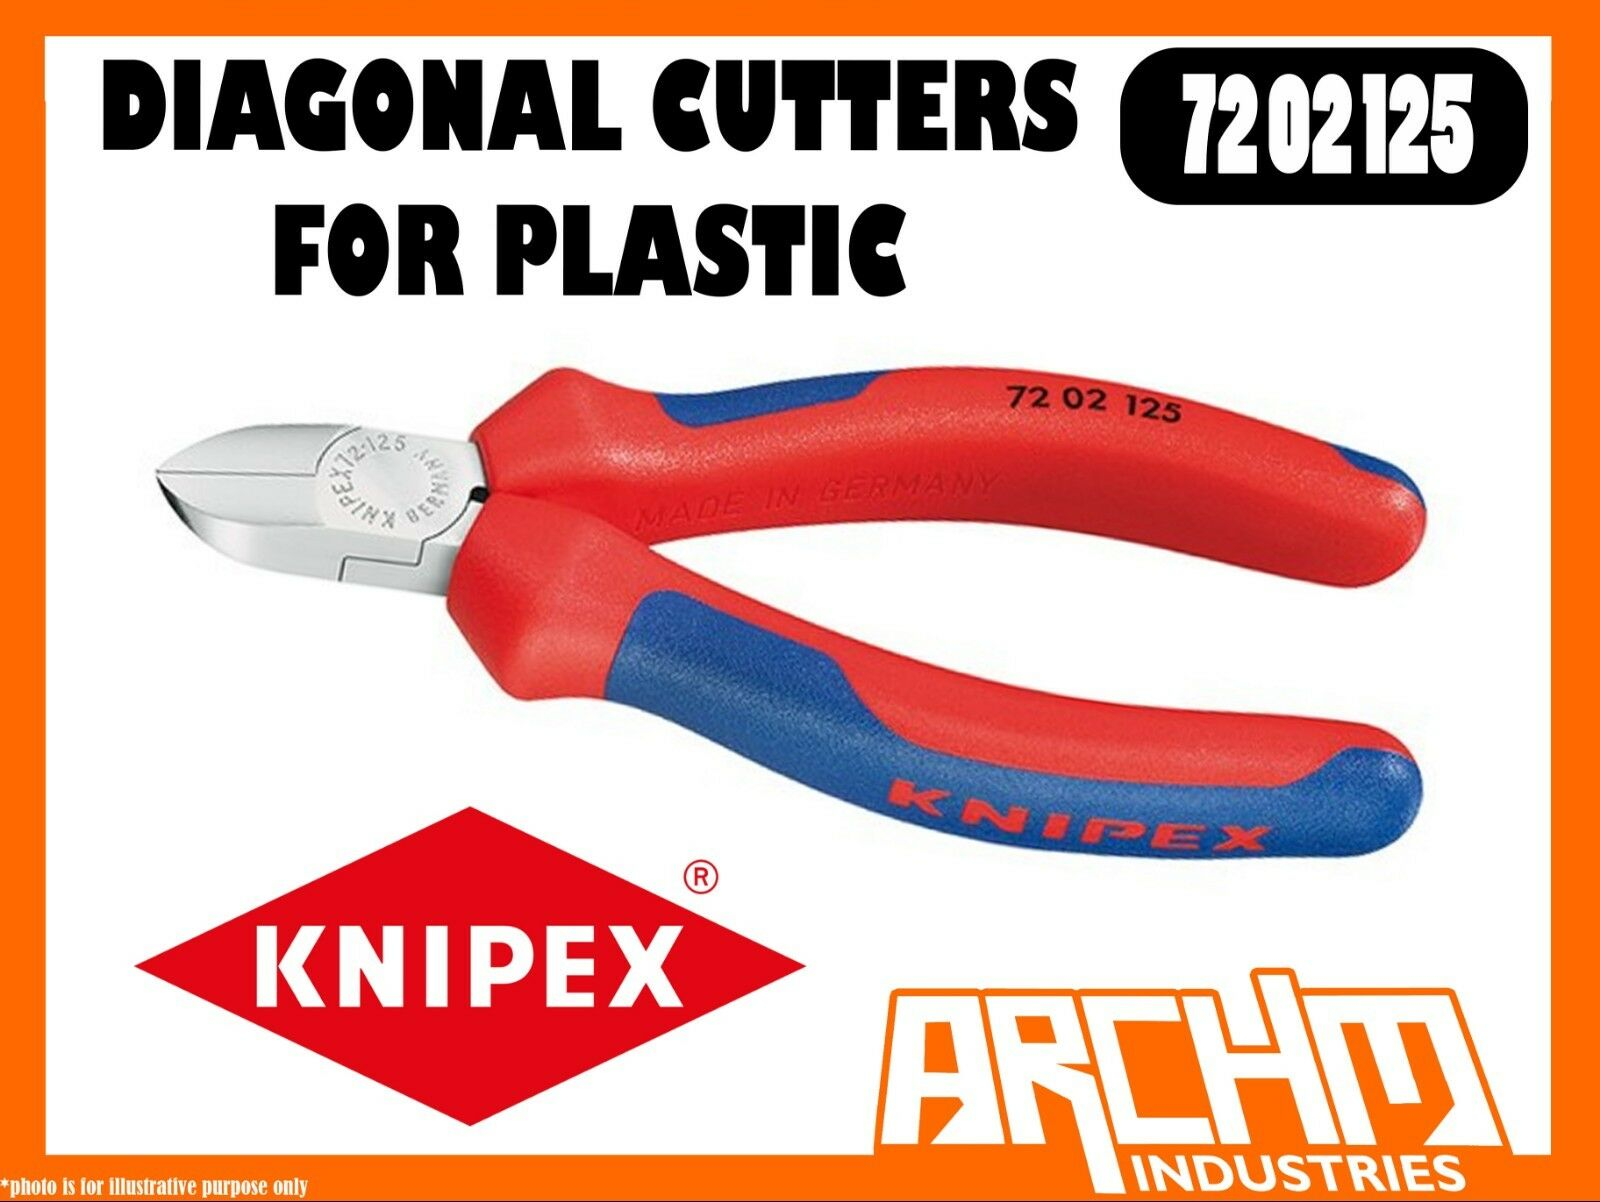 KNIPEX 7202125 - DIAGONAL CUTTERS FOR PLASTIC - 125MM - OPENING SPRING STEEL